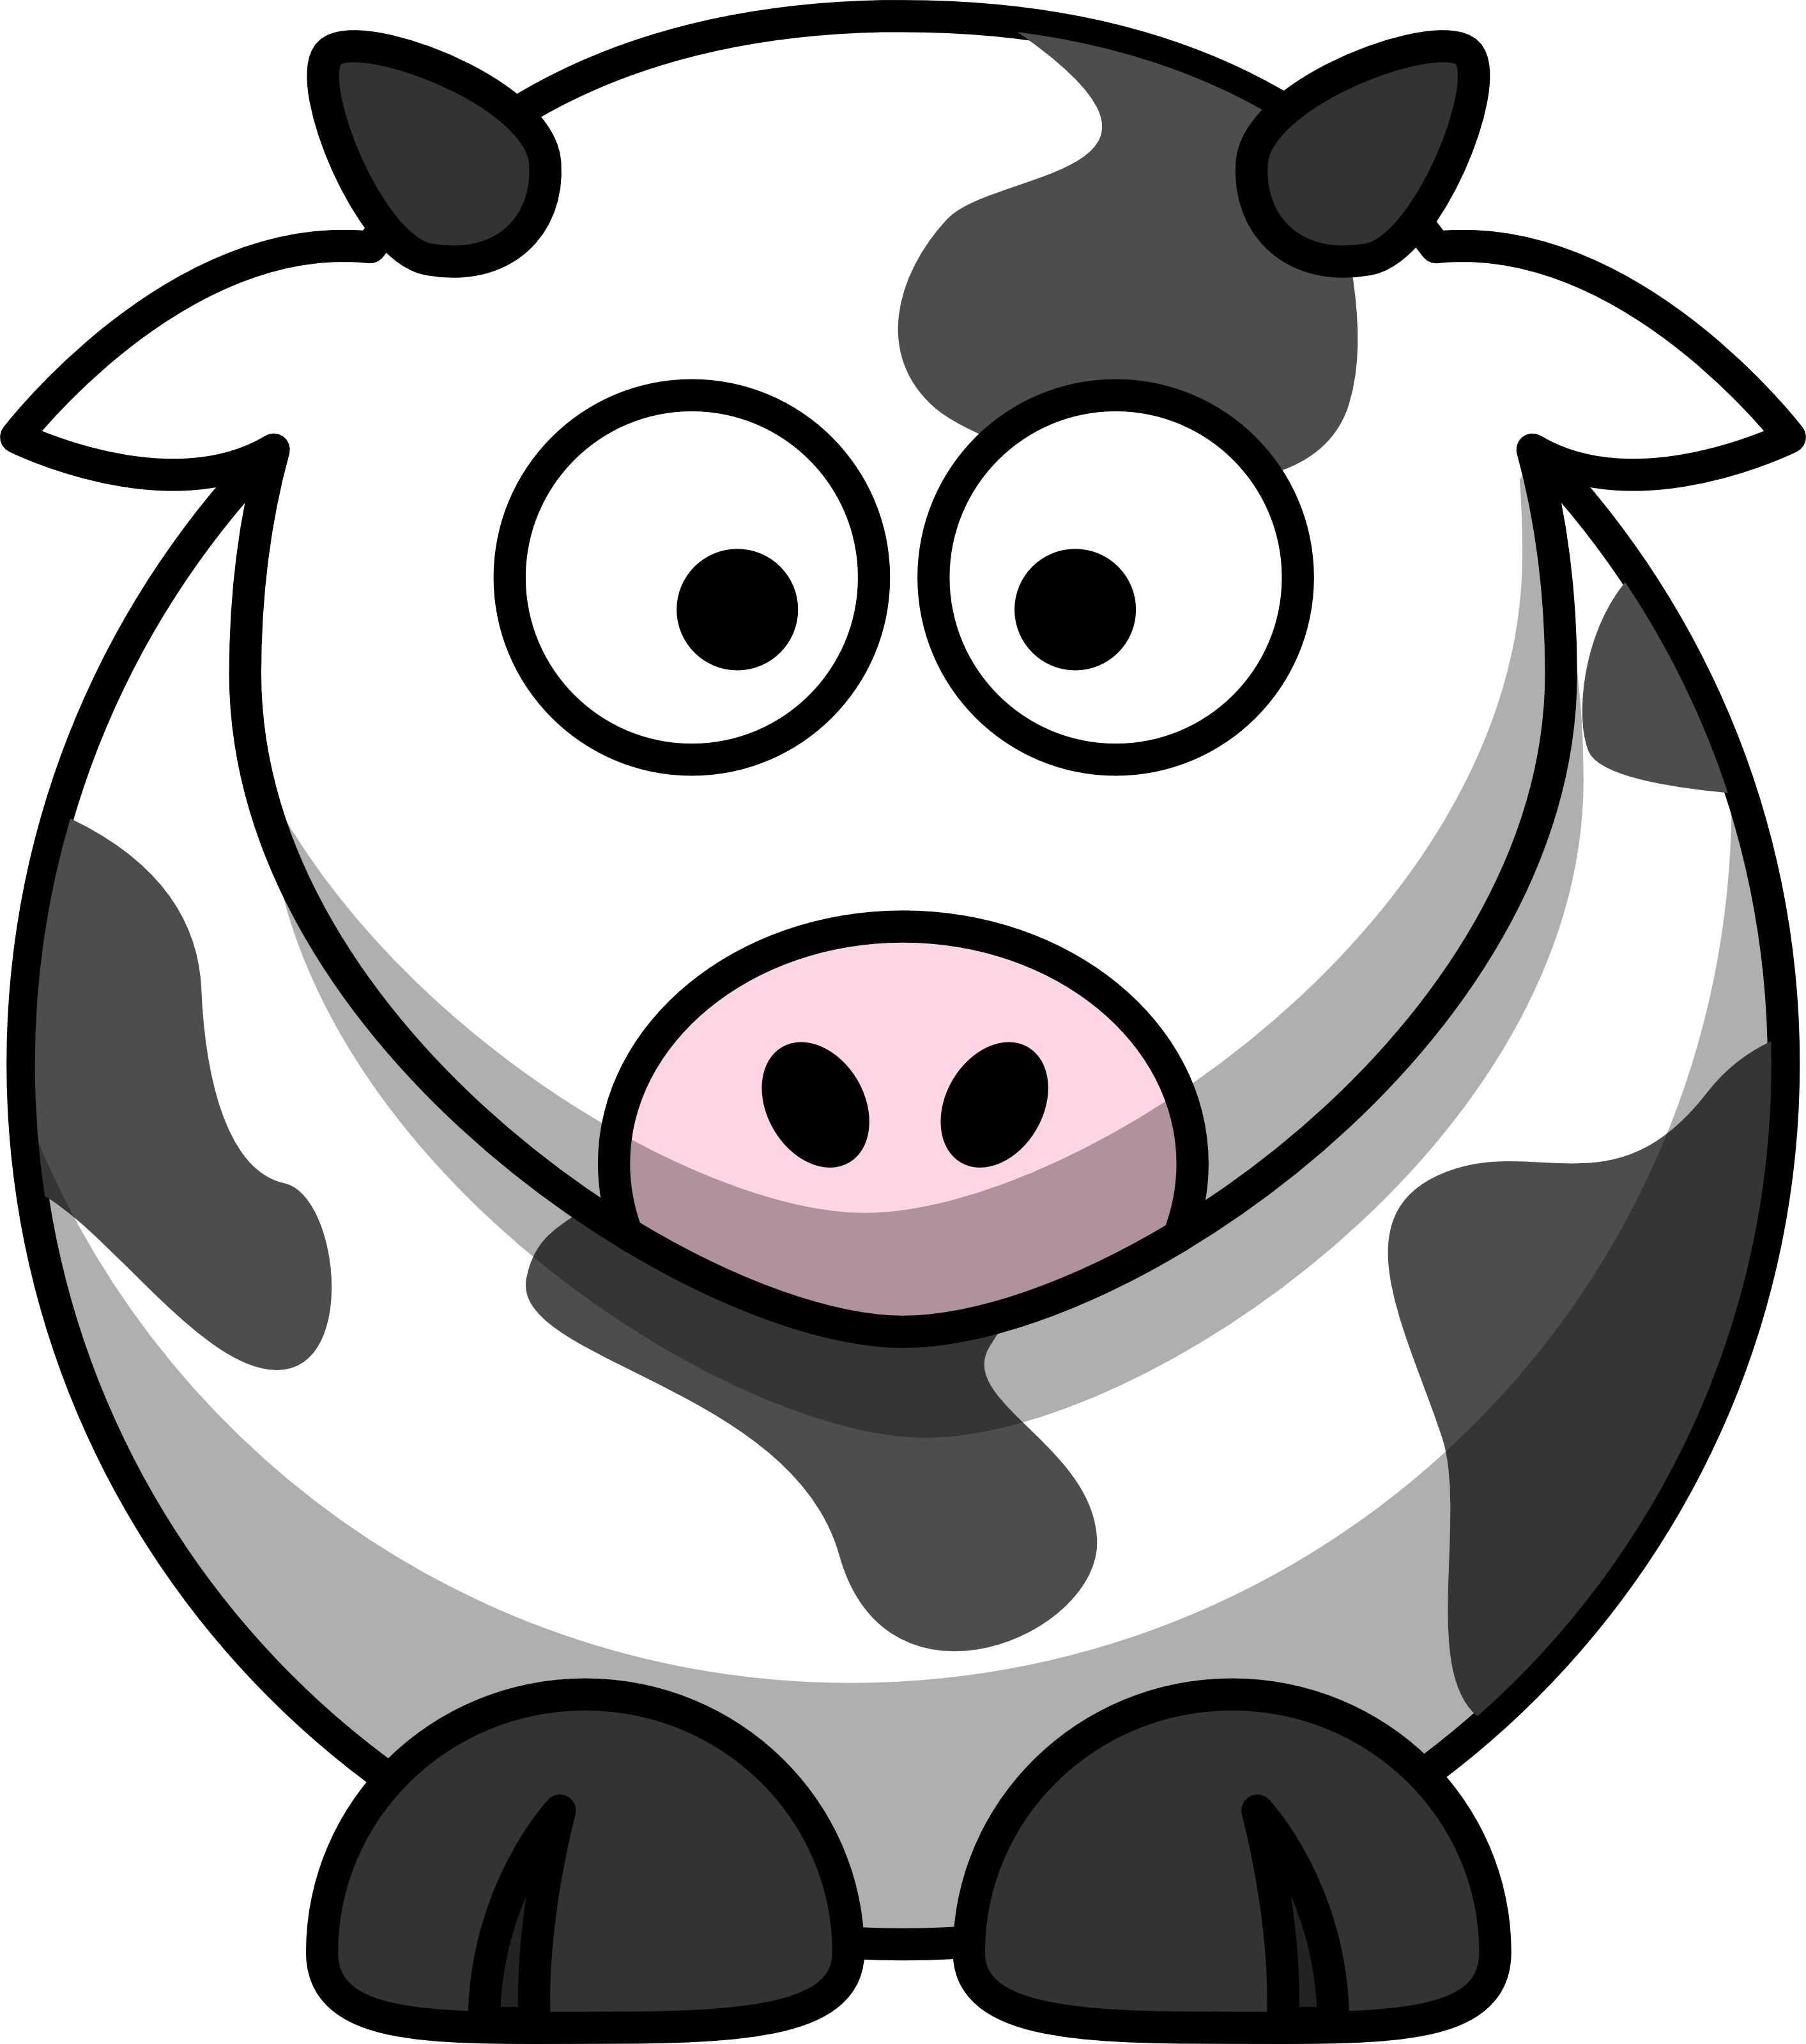 Cow clipart cartoon. Technique of the week